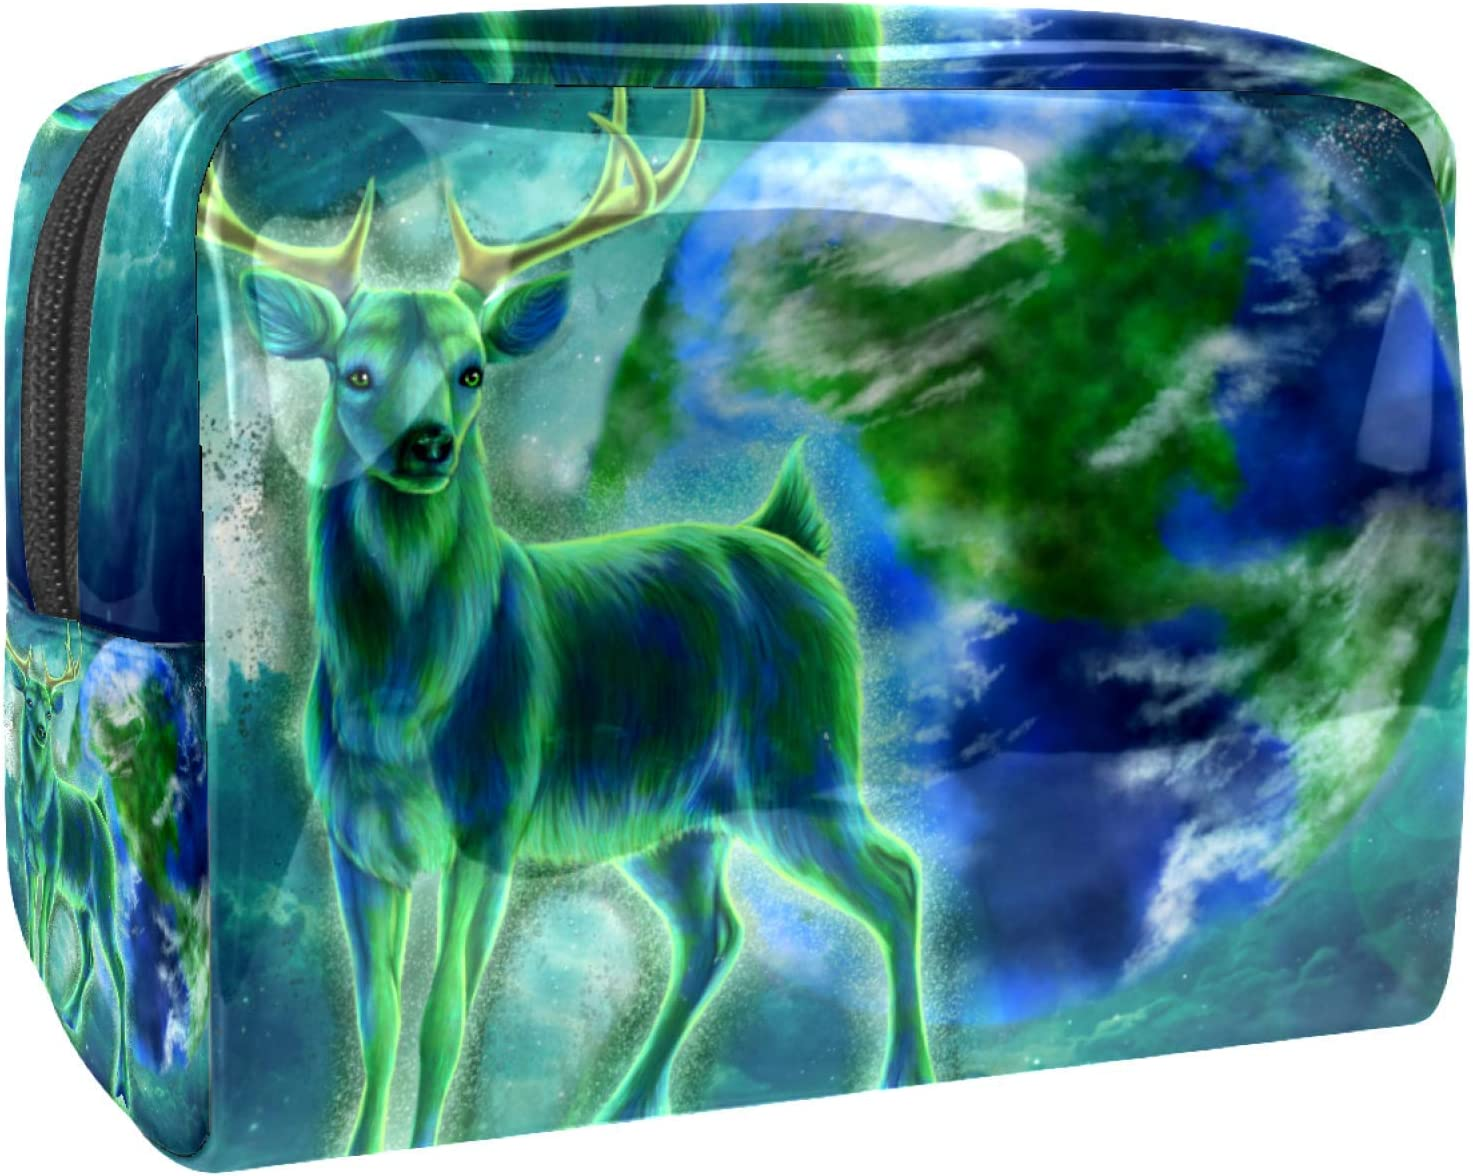 Cosmetic Bag for Women Roomy Makeup Earth and Bags deer favorite green Tr Special sale item